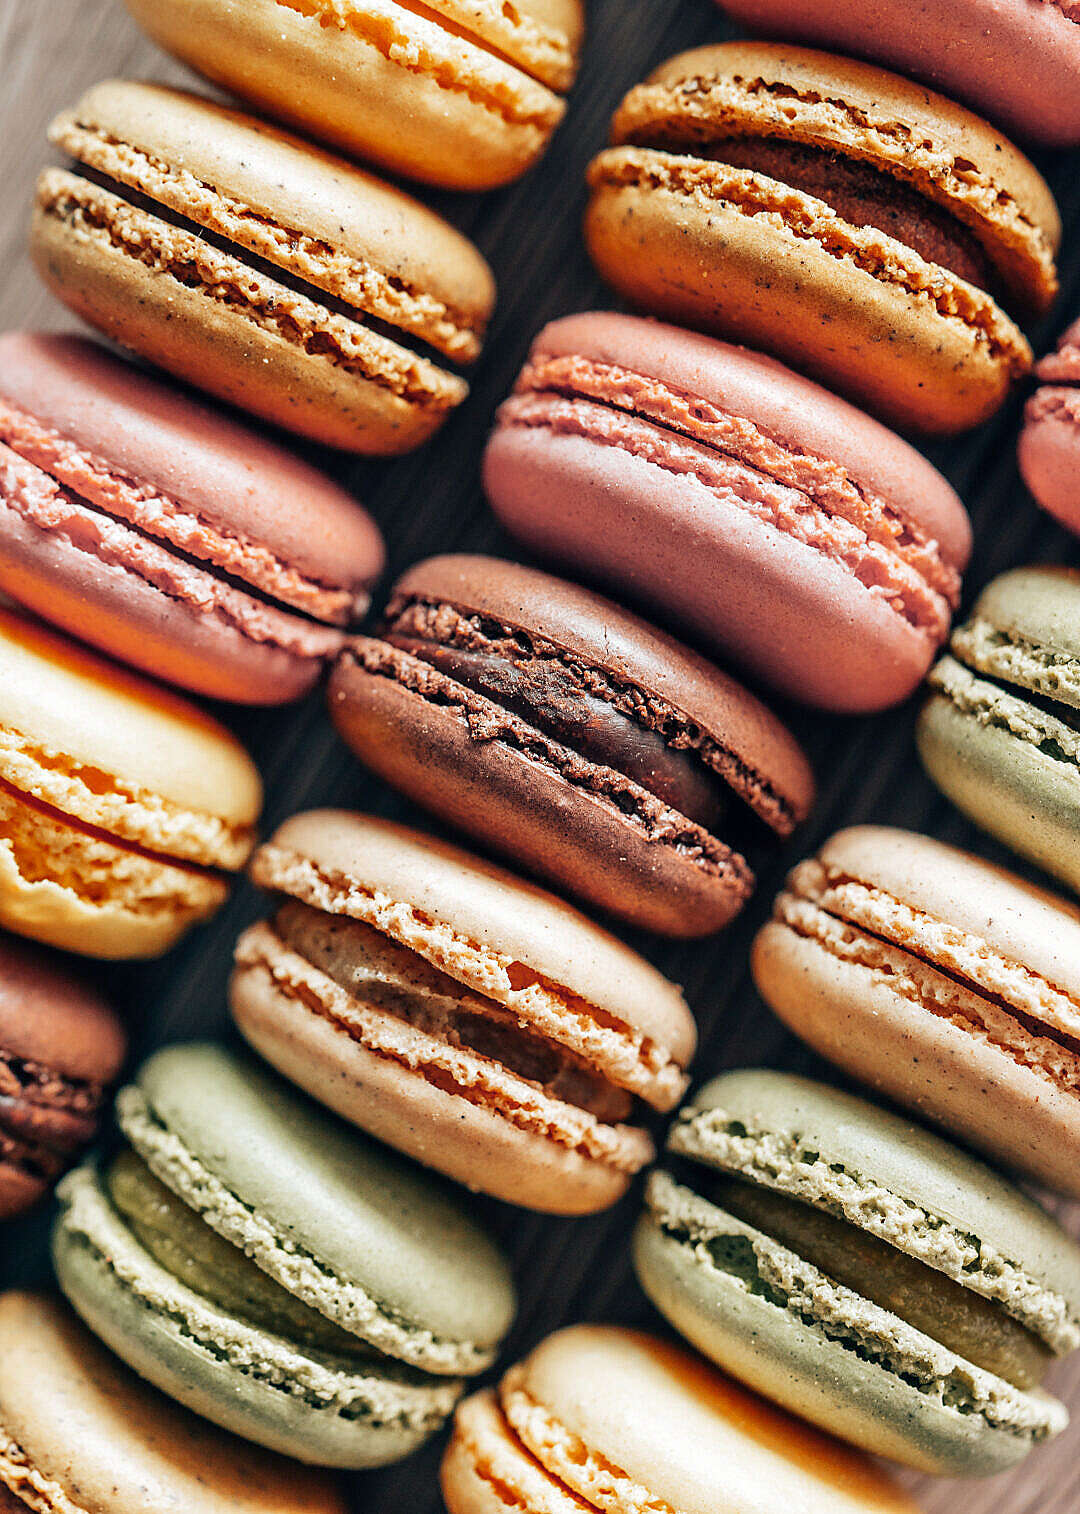 Download Macarons Vertical FREE Stock Photo